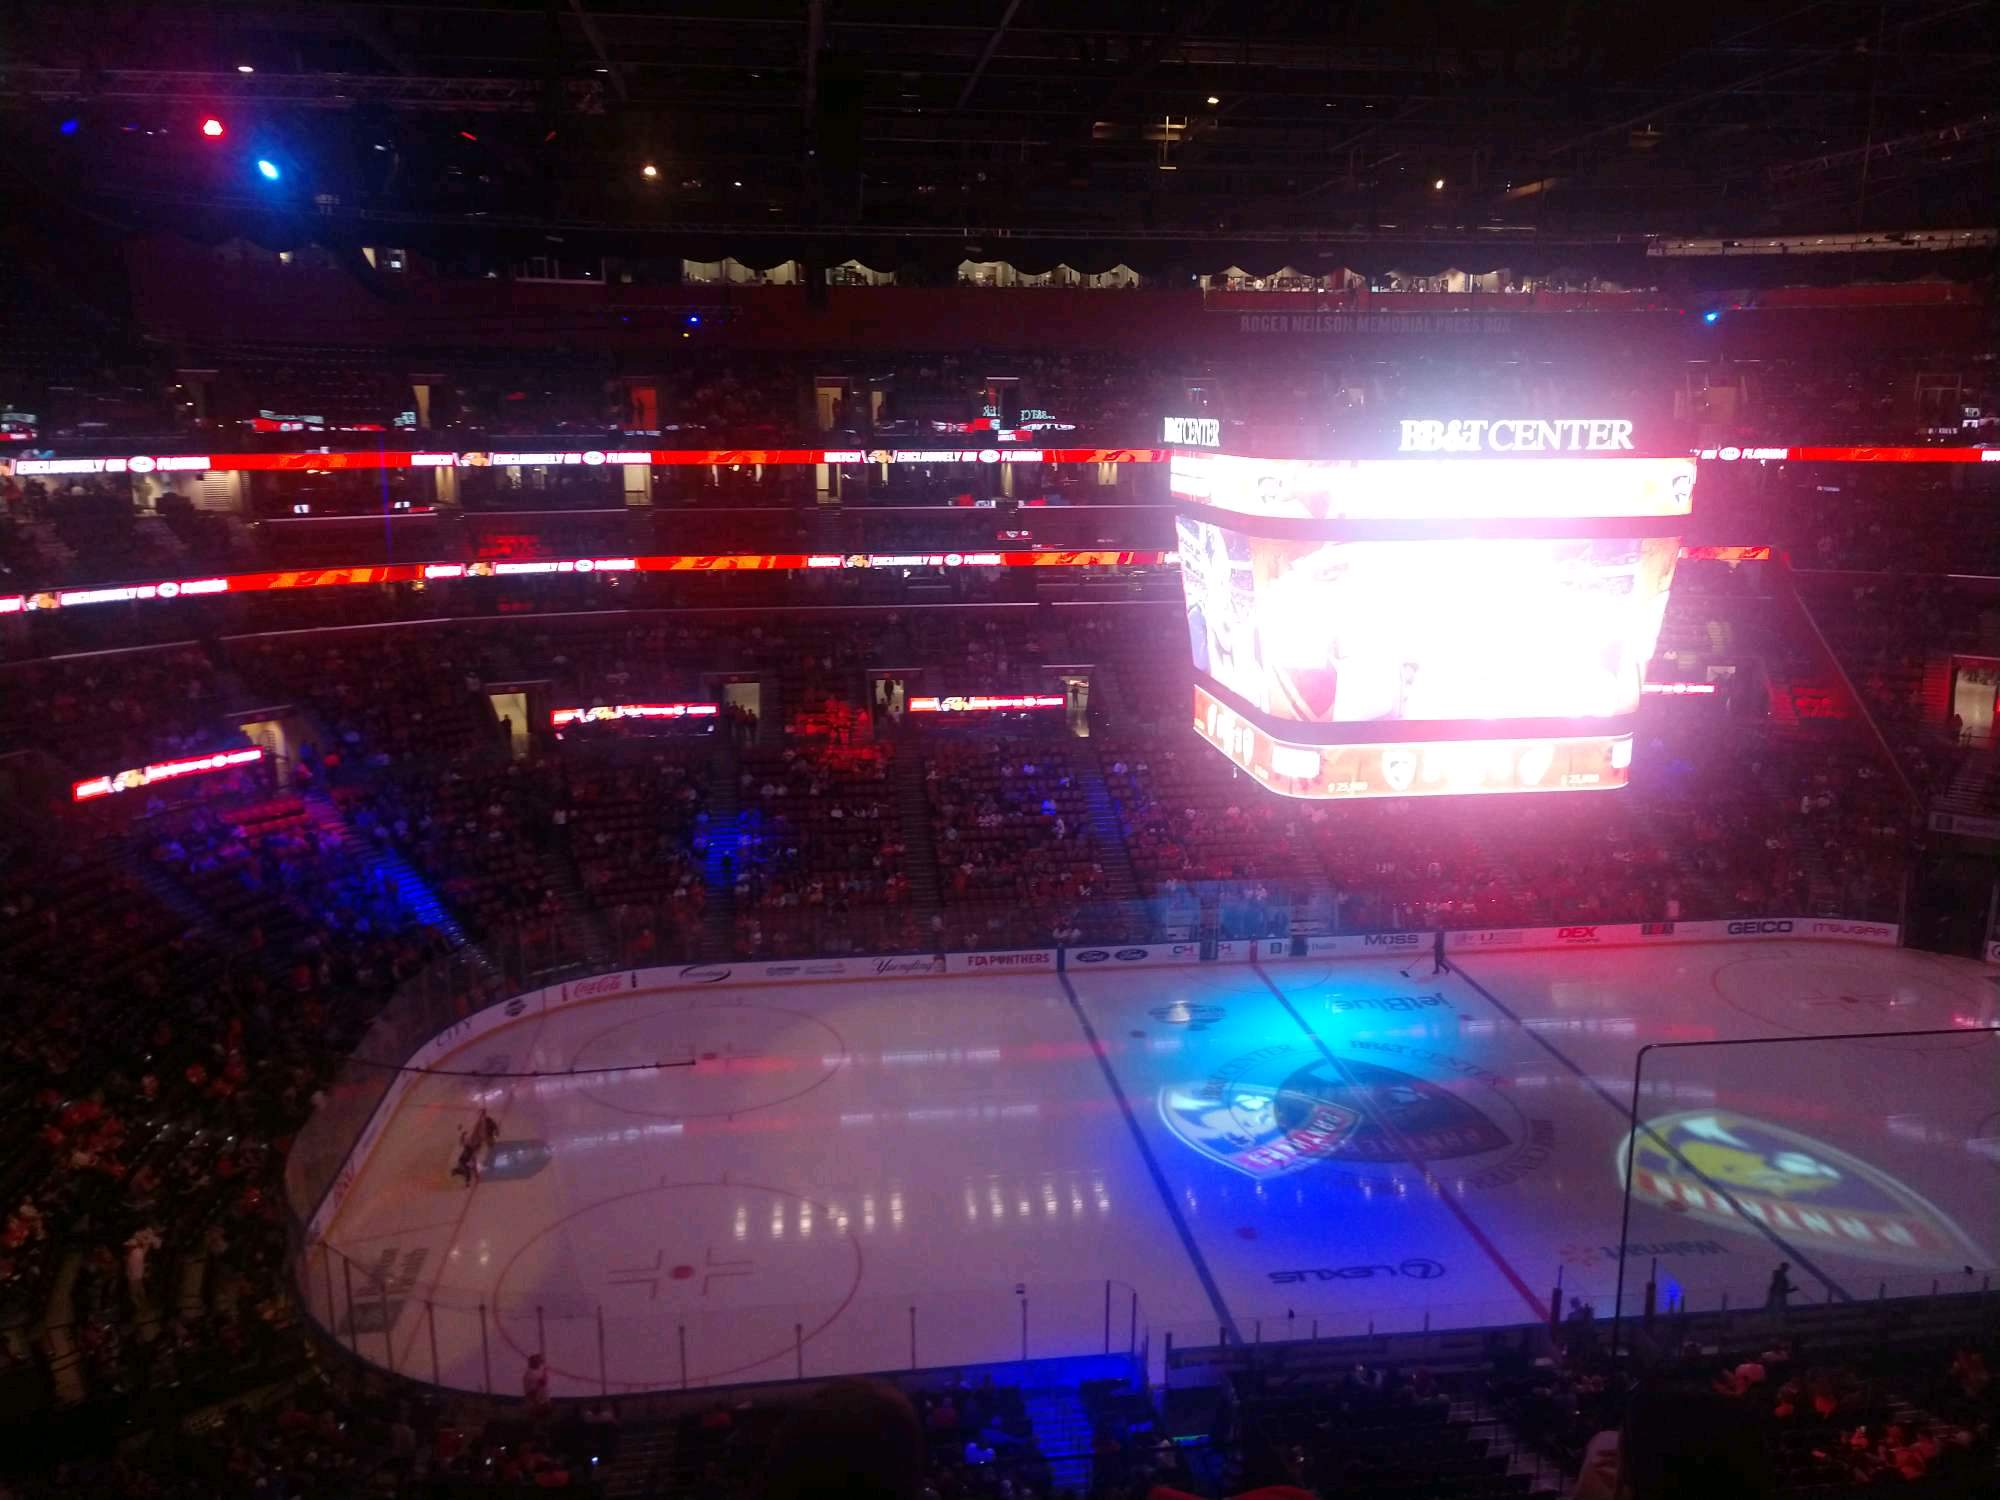 BB&T Center Section 303 Row 3 Seat 4